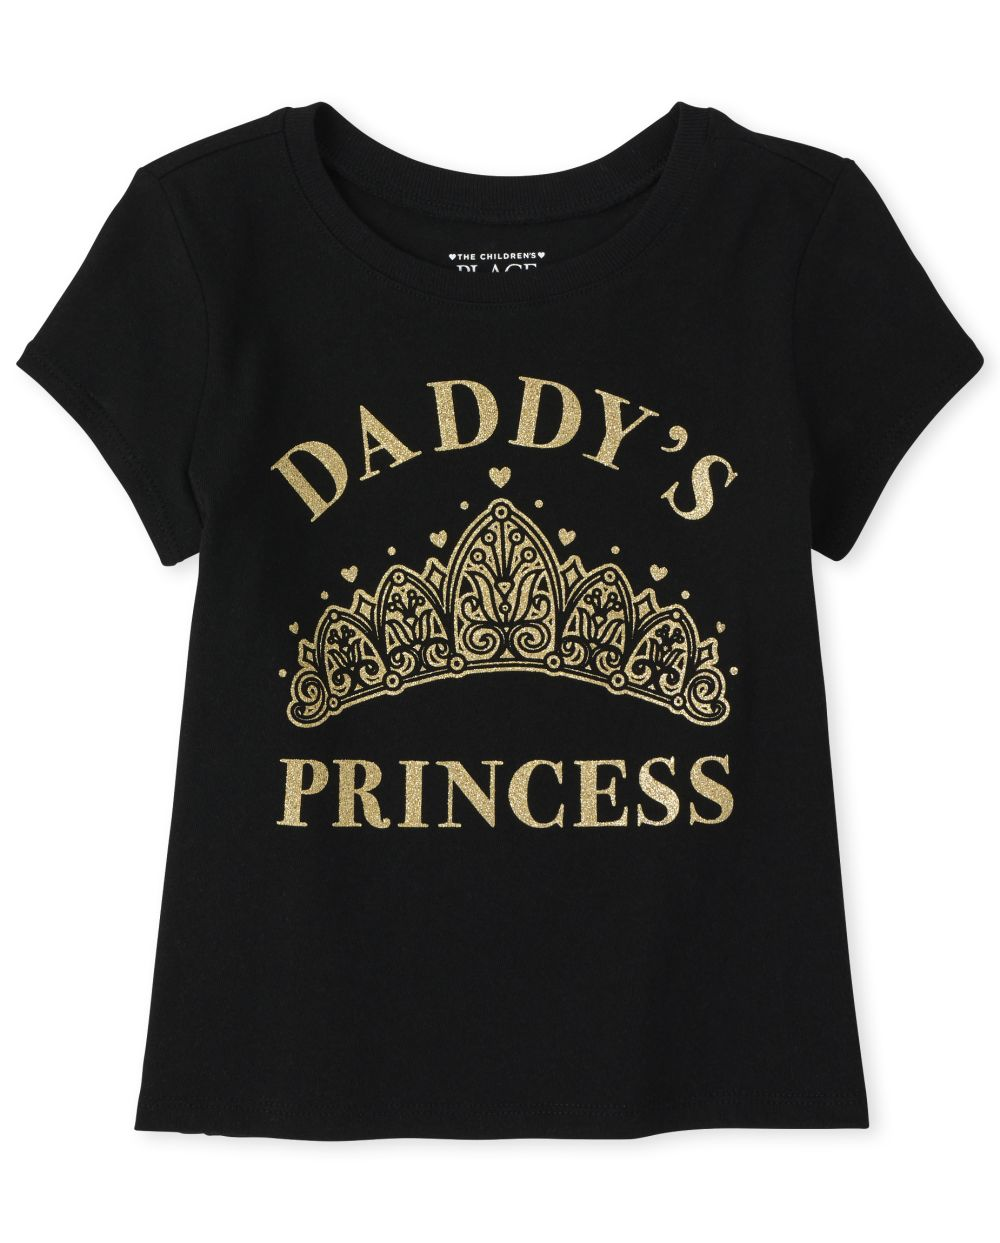 Baby And Toddler Daddy's Princess Graphic Tee - Black T-Shirt